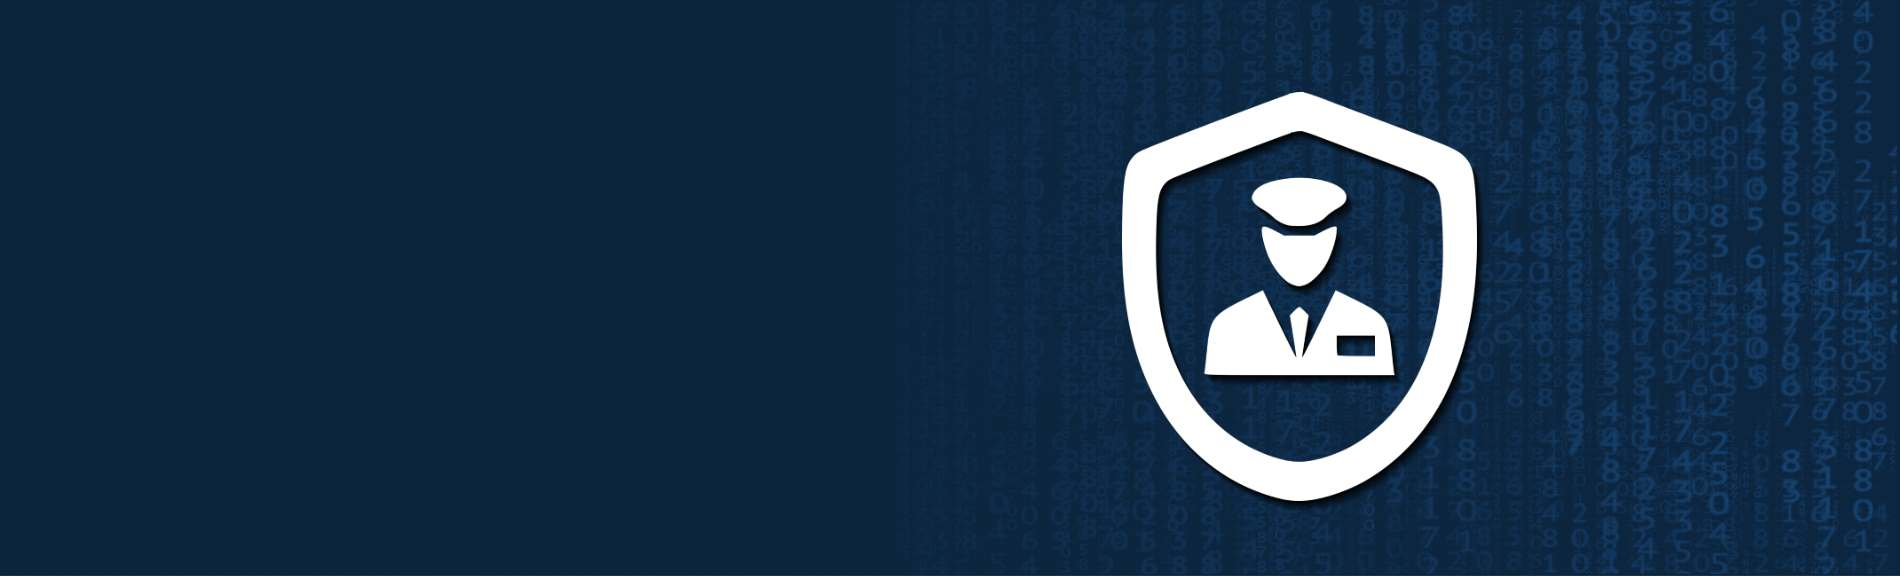 Our WordPress Website Security will protect your business.